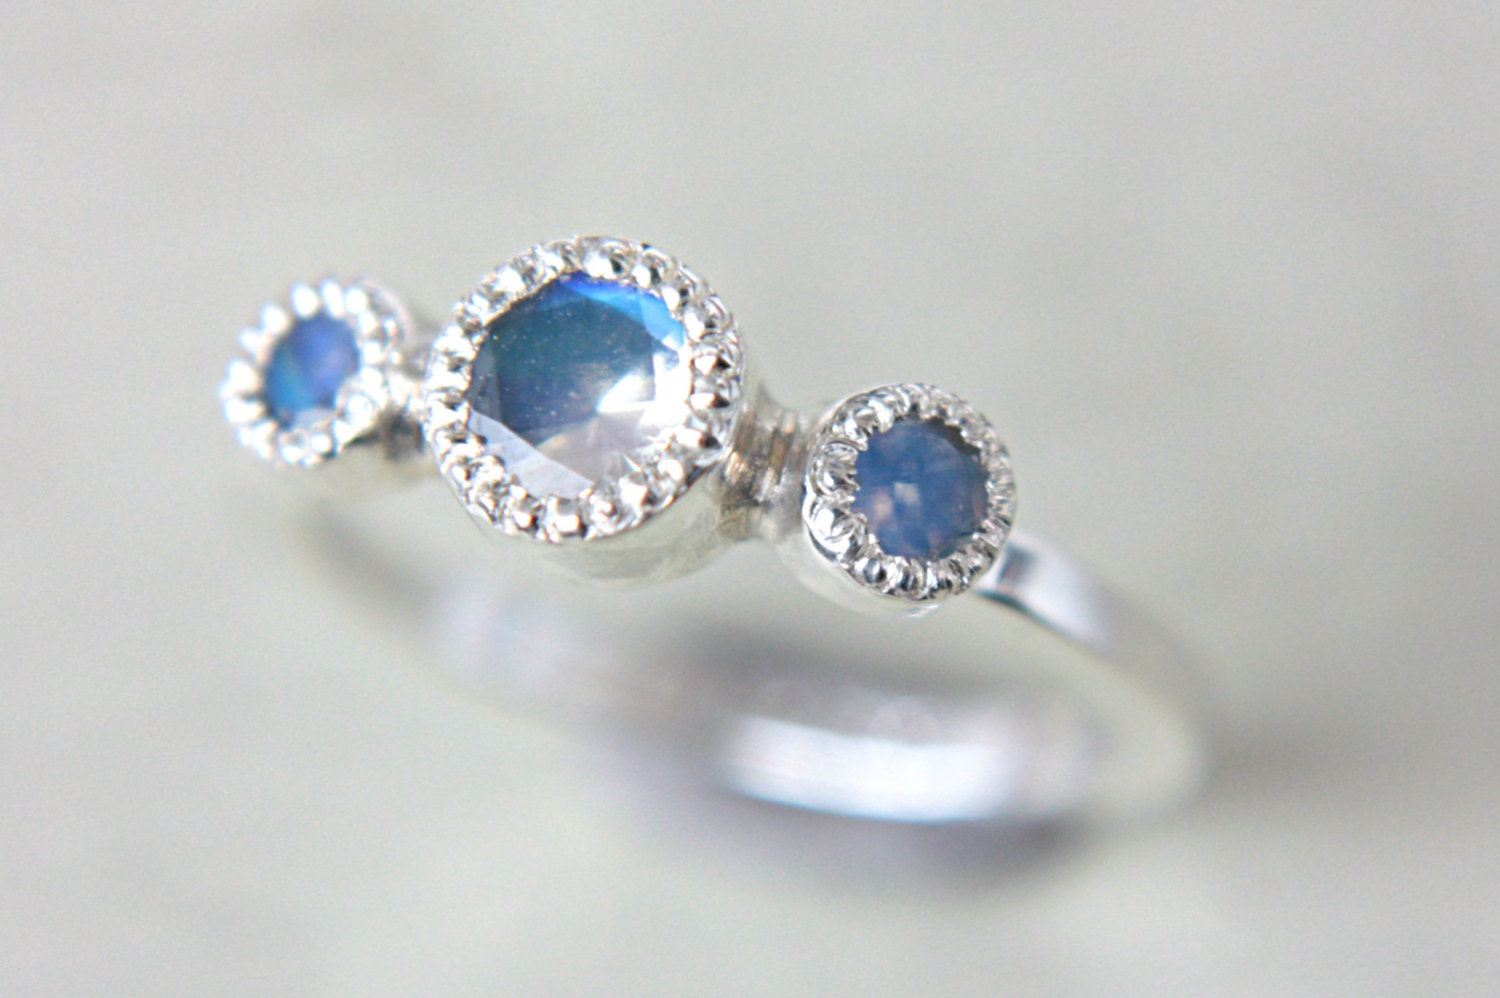 Moonstone Engagement Ring Vintage Inspired By ManariDesign On Etsy